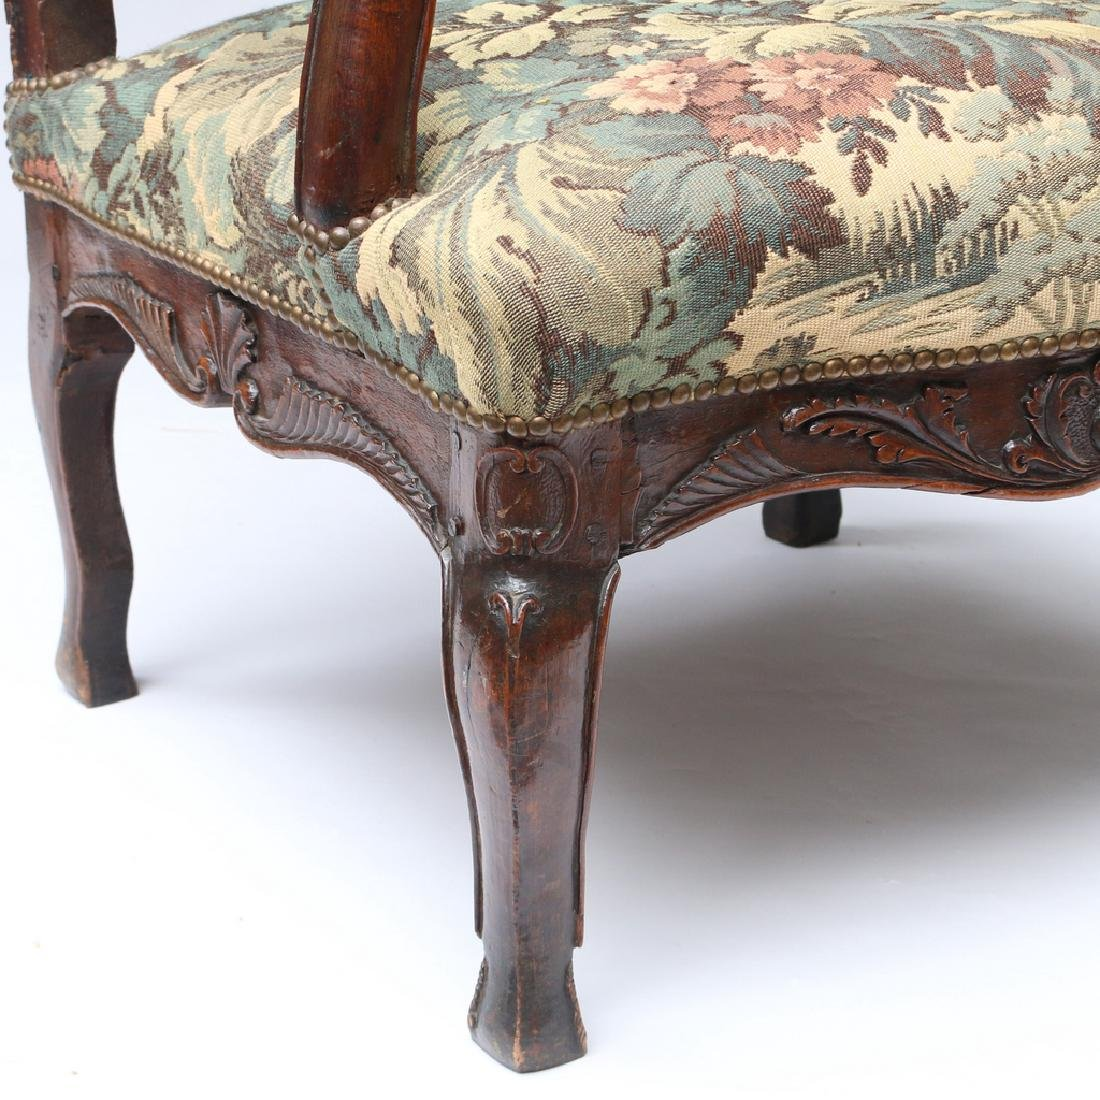 LOUIS XIII-STYLE CARVED WALNUT FAUTEUIL - 3